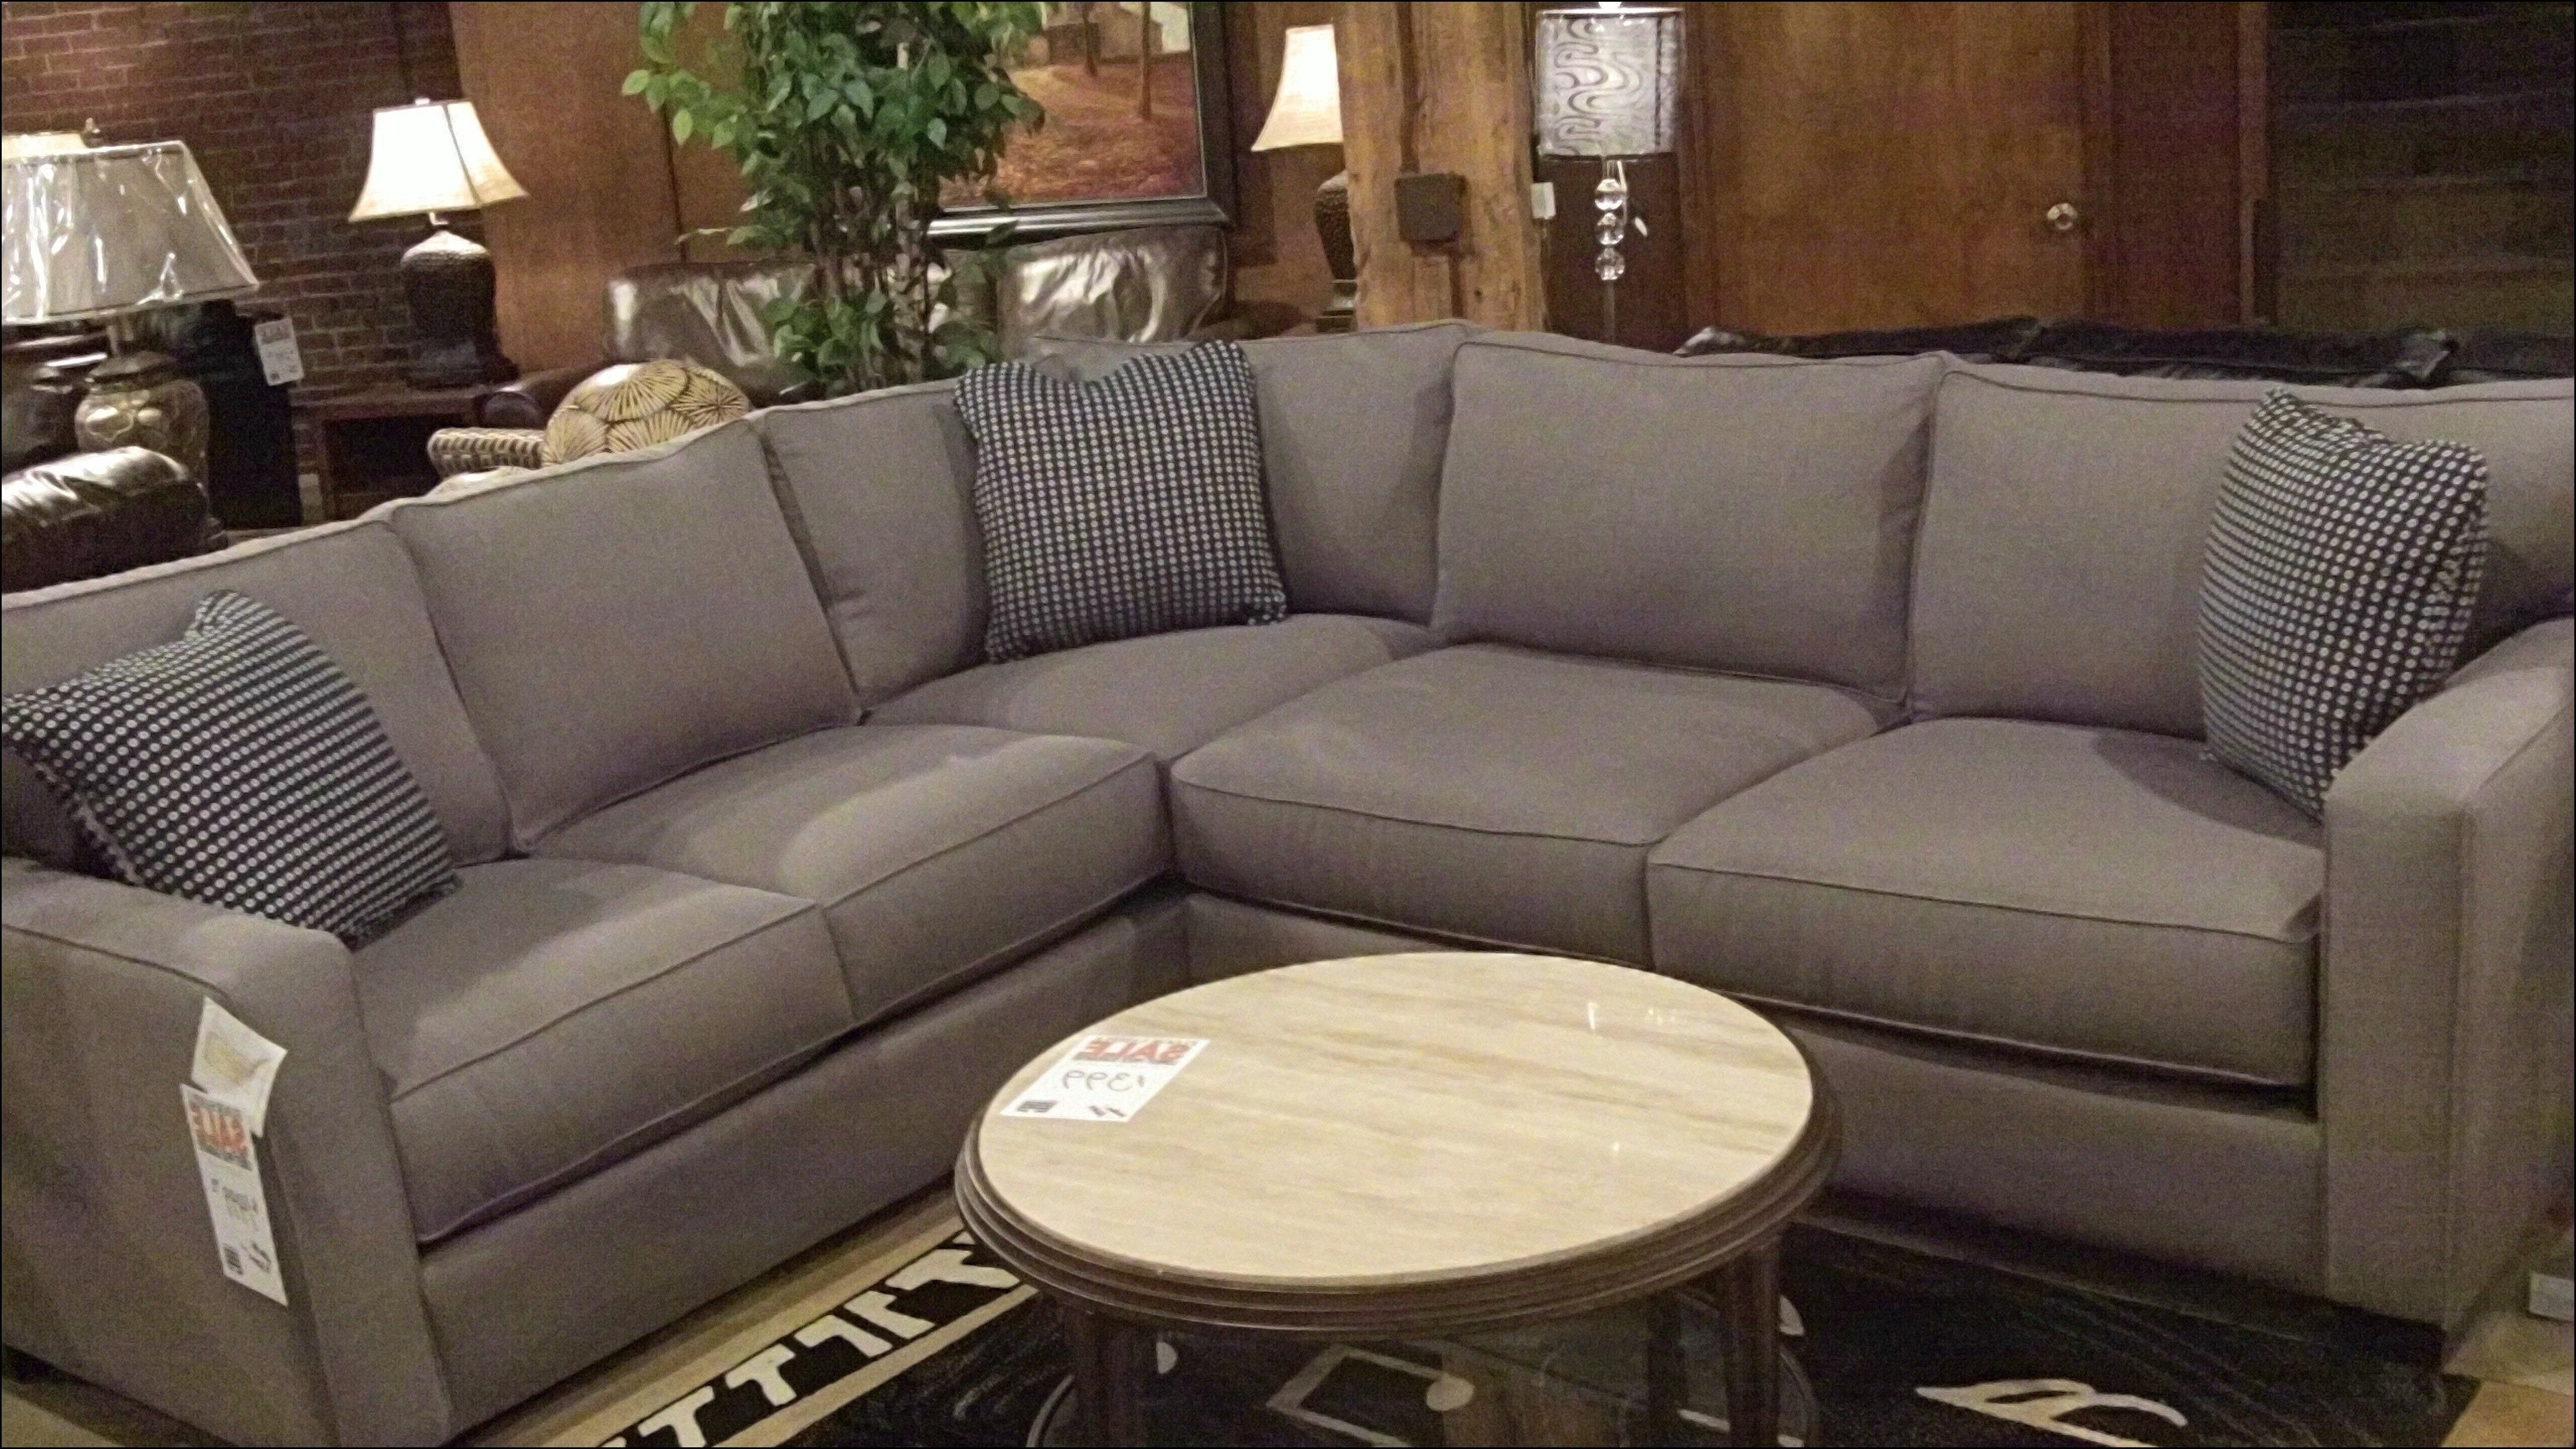 Most Popular Stylish Sectional Sofas Tulsa Ok – Buildsimplehome With Regard To Tulsa Sectional Sofas (View 5 of 20)